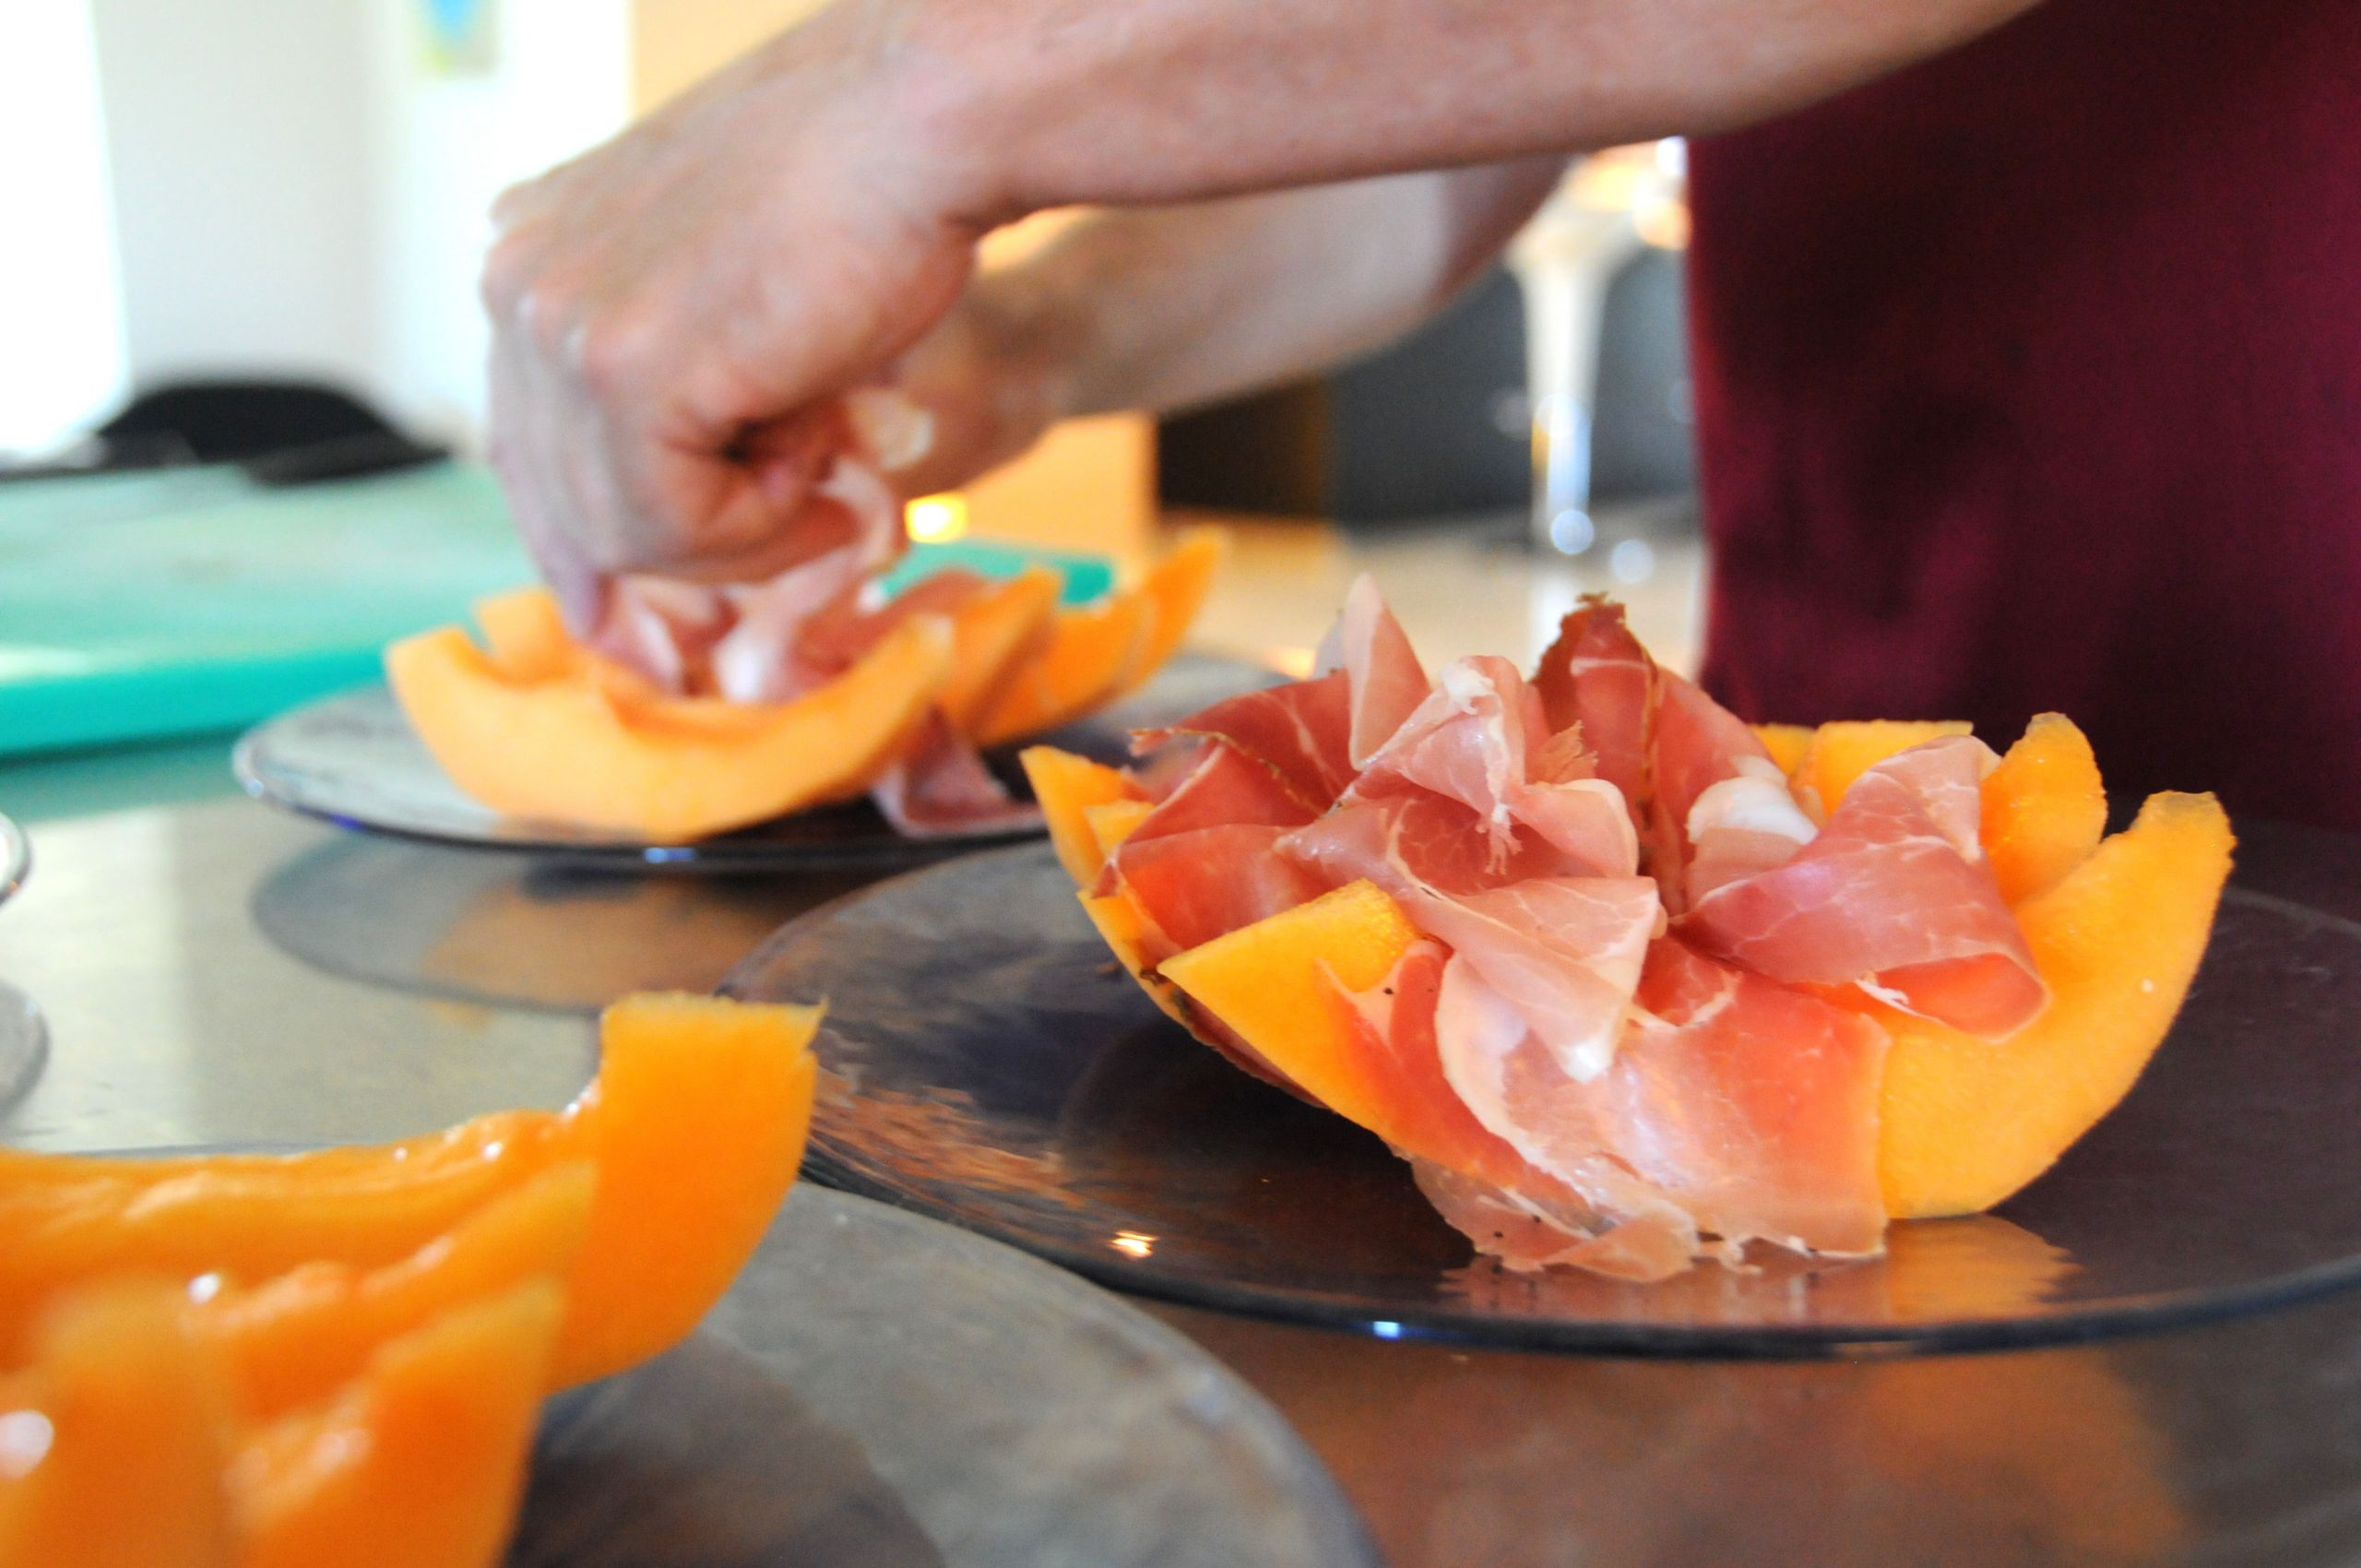 Image showing a hand arranging fine slices of ham atop slices of melon